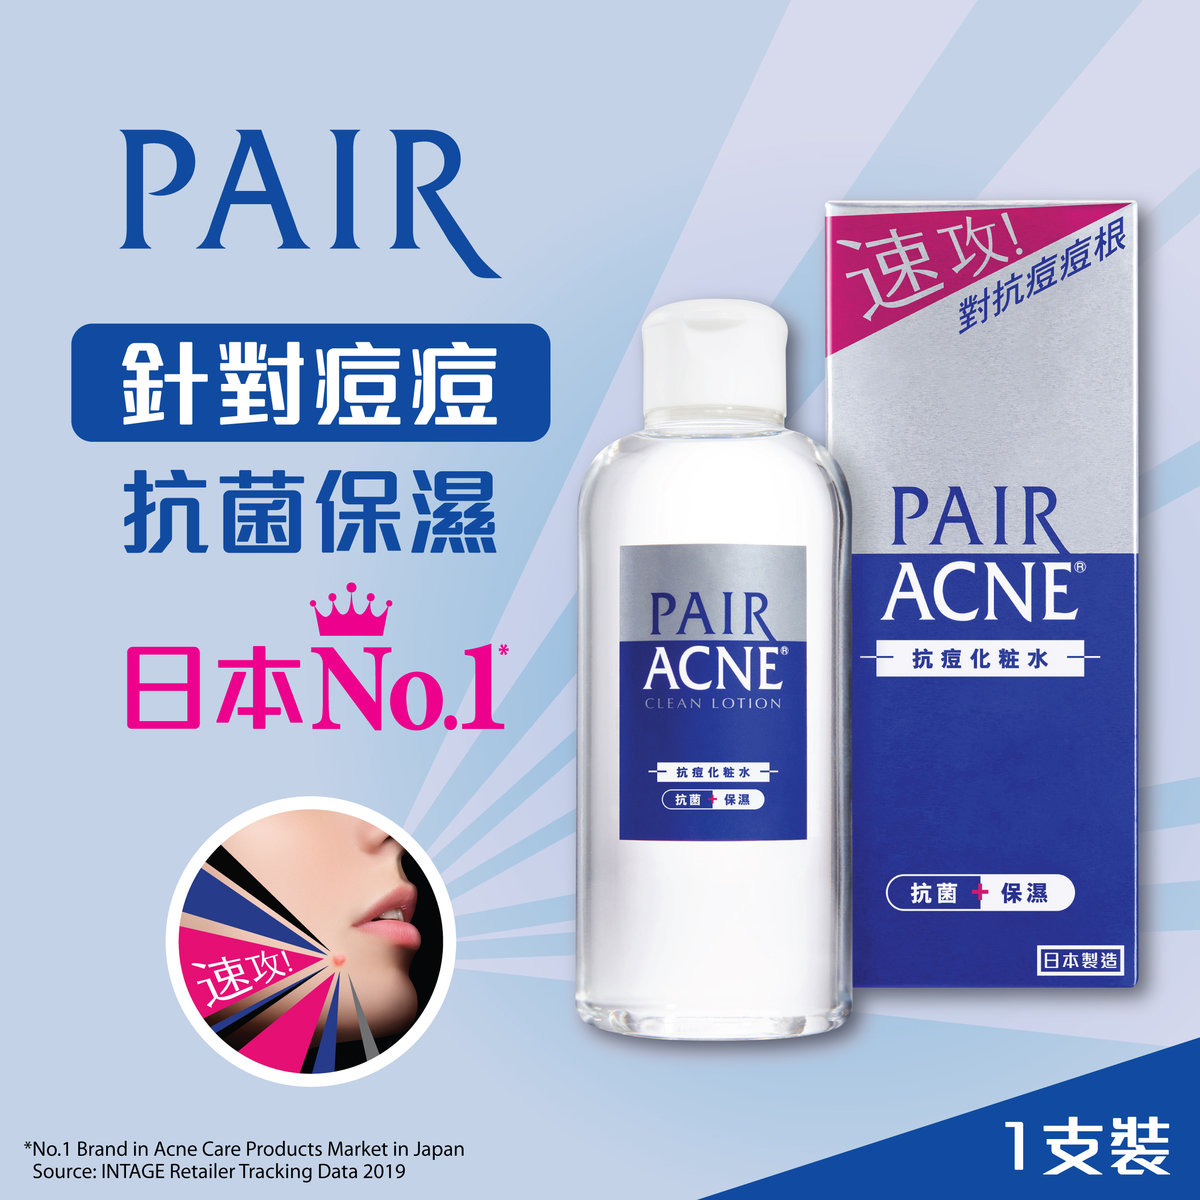 Acne Clean Lotion